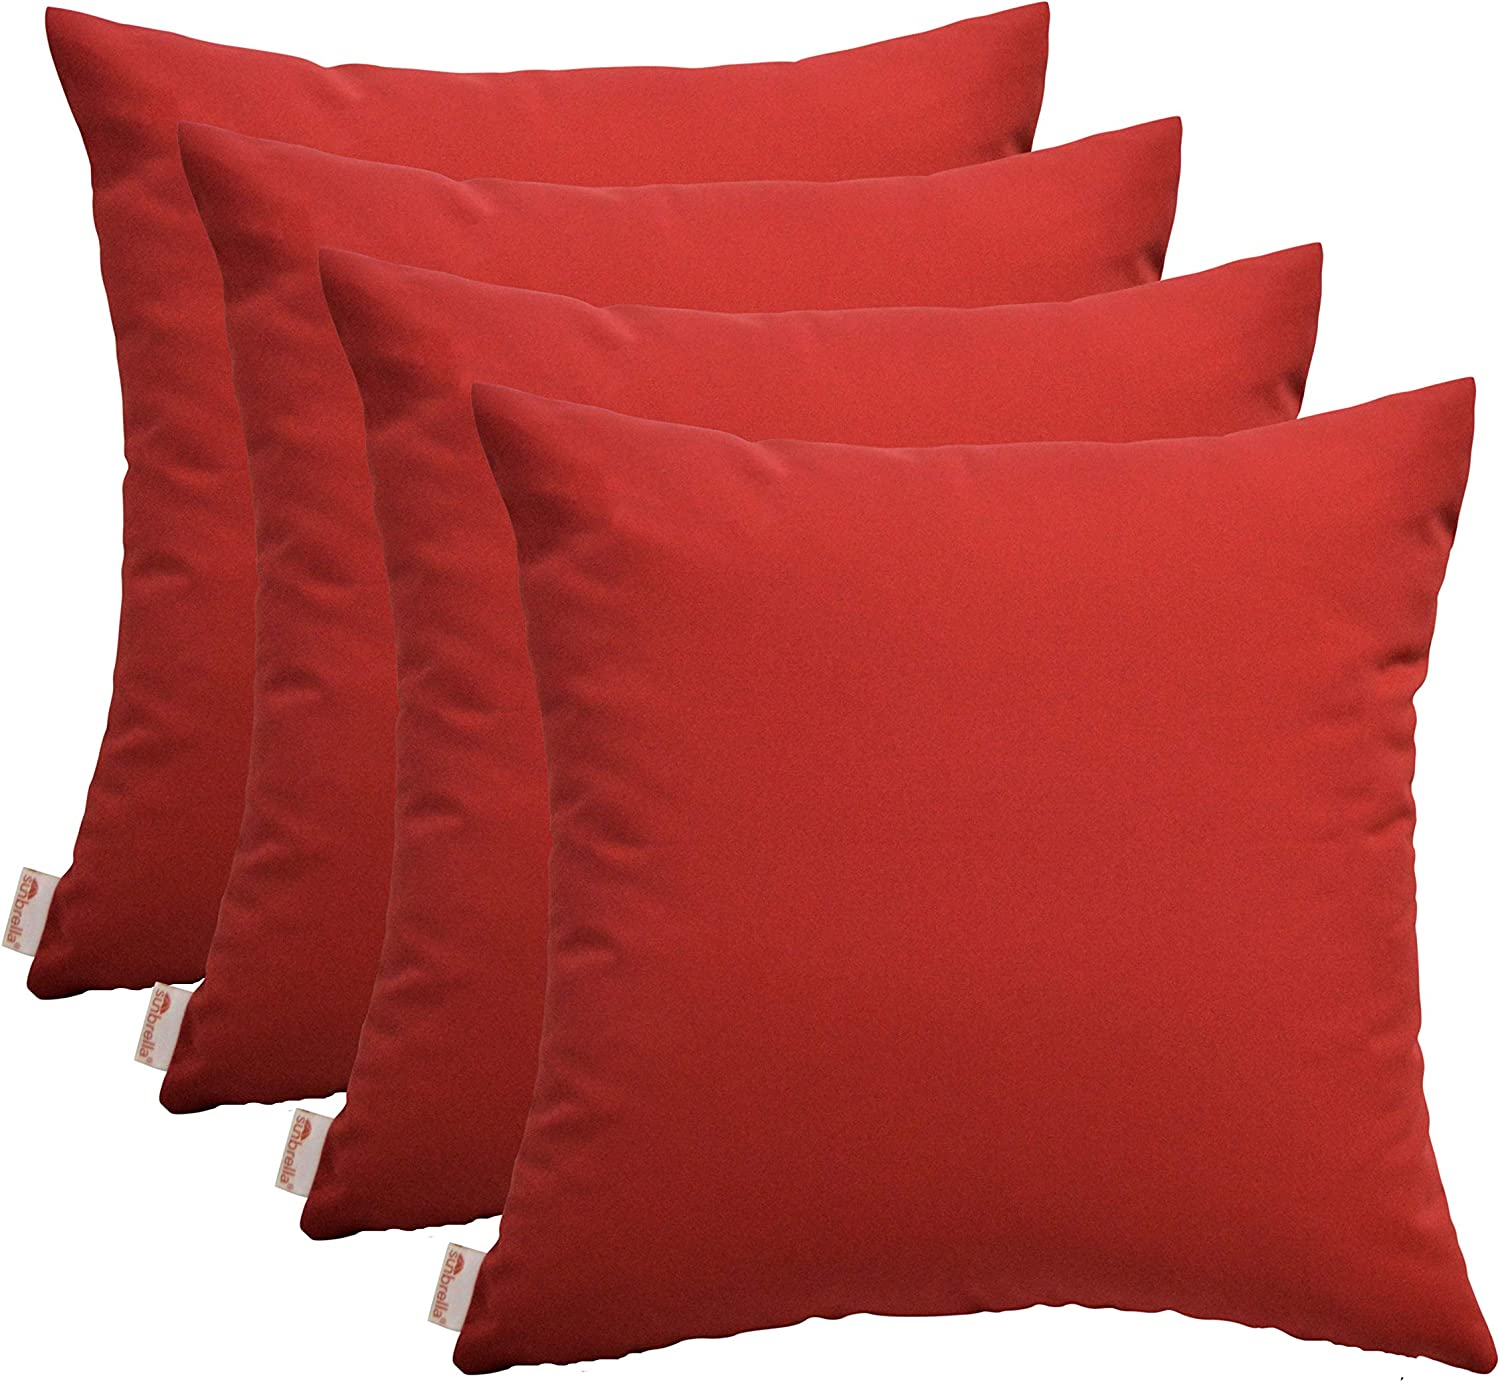 RSH D cor Set of 4 Indoor Outdoor Square Throw Pillows Sunbrella Canvas Jockey Red 17 x 17